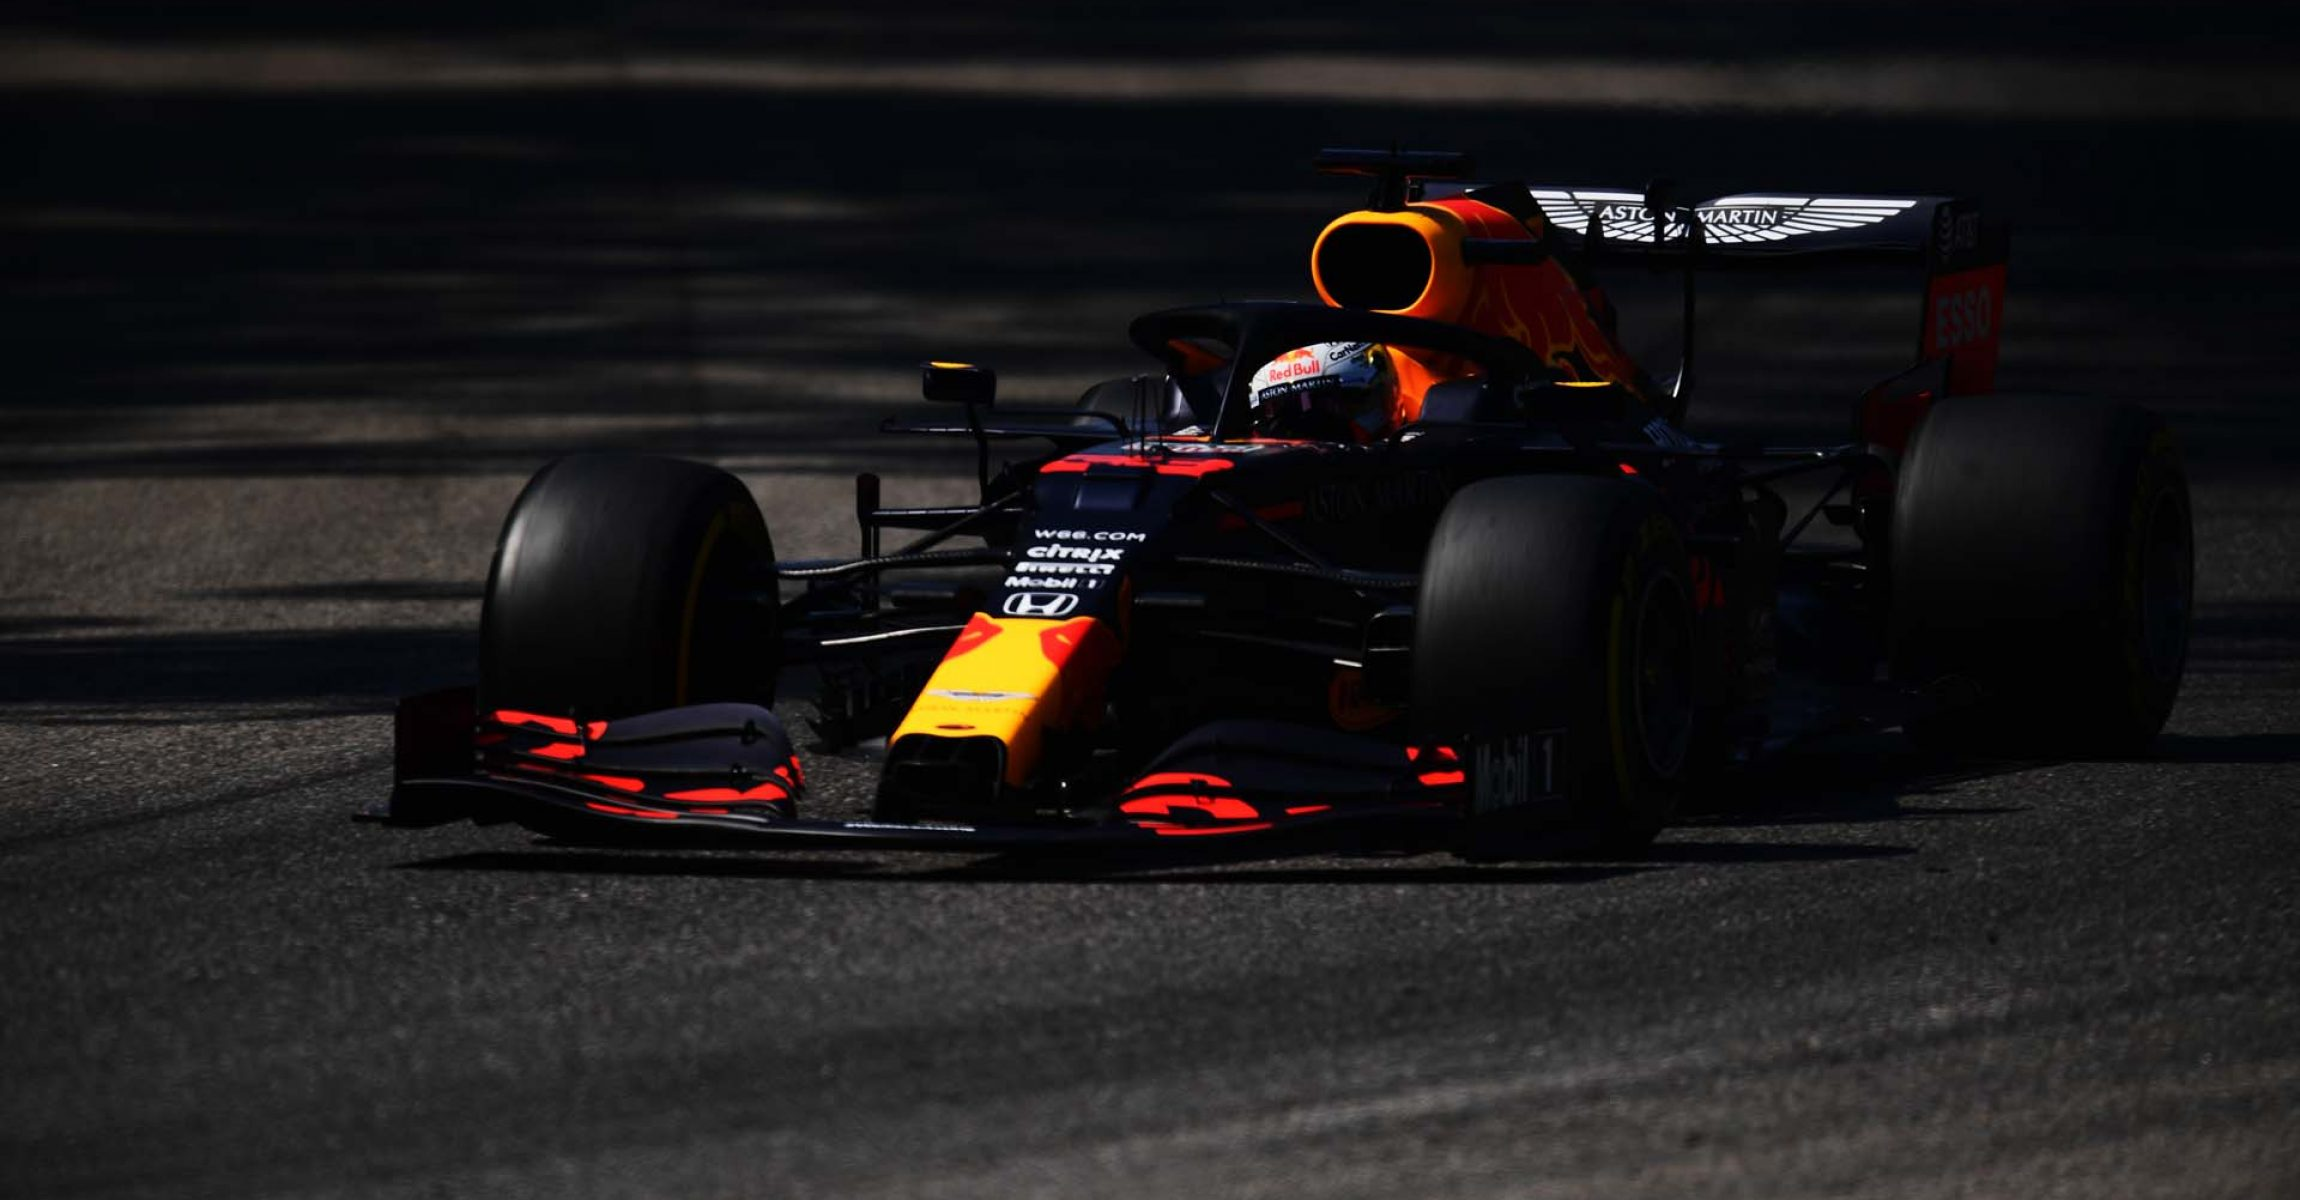 MONZA, ITALY - SEPTEMBER 05: Max Verstappen of the Netherlands driving the (33) Aston Martin Red Bull Racing RB16 during final practice for the F1 Grand Prix of Italy at Autodromo di Monza on September 05, 2020 in Monza, Italy. (Photo by Miguel Medina -  Pool/Getty Images)